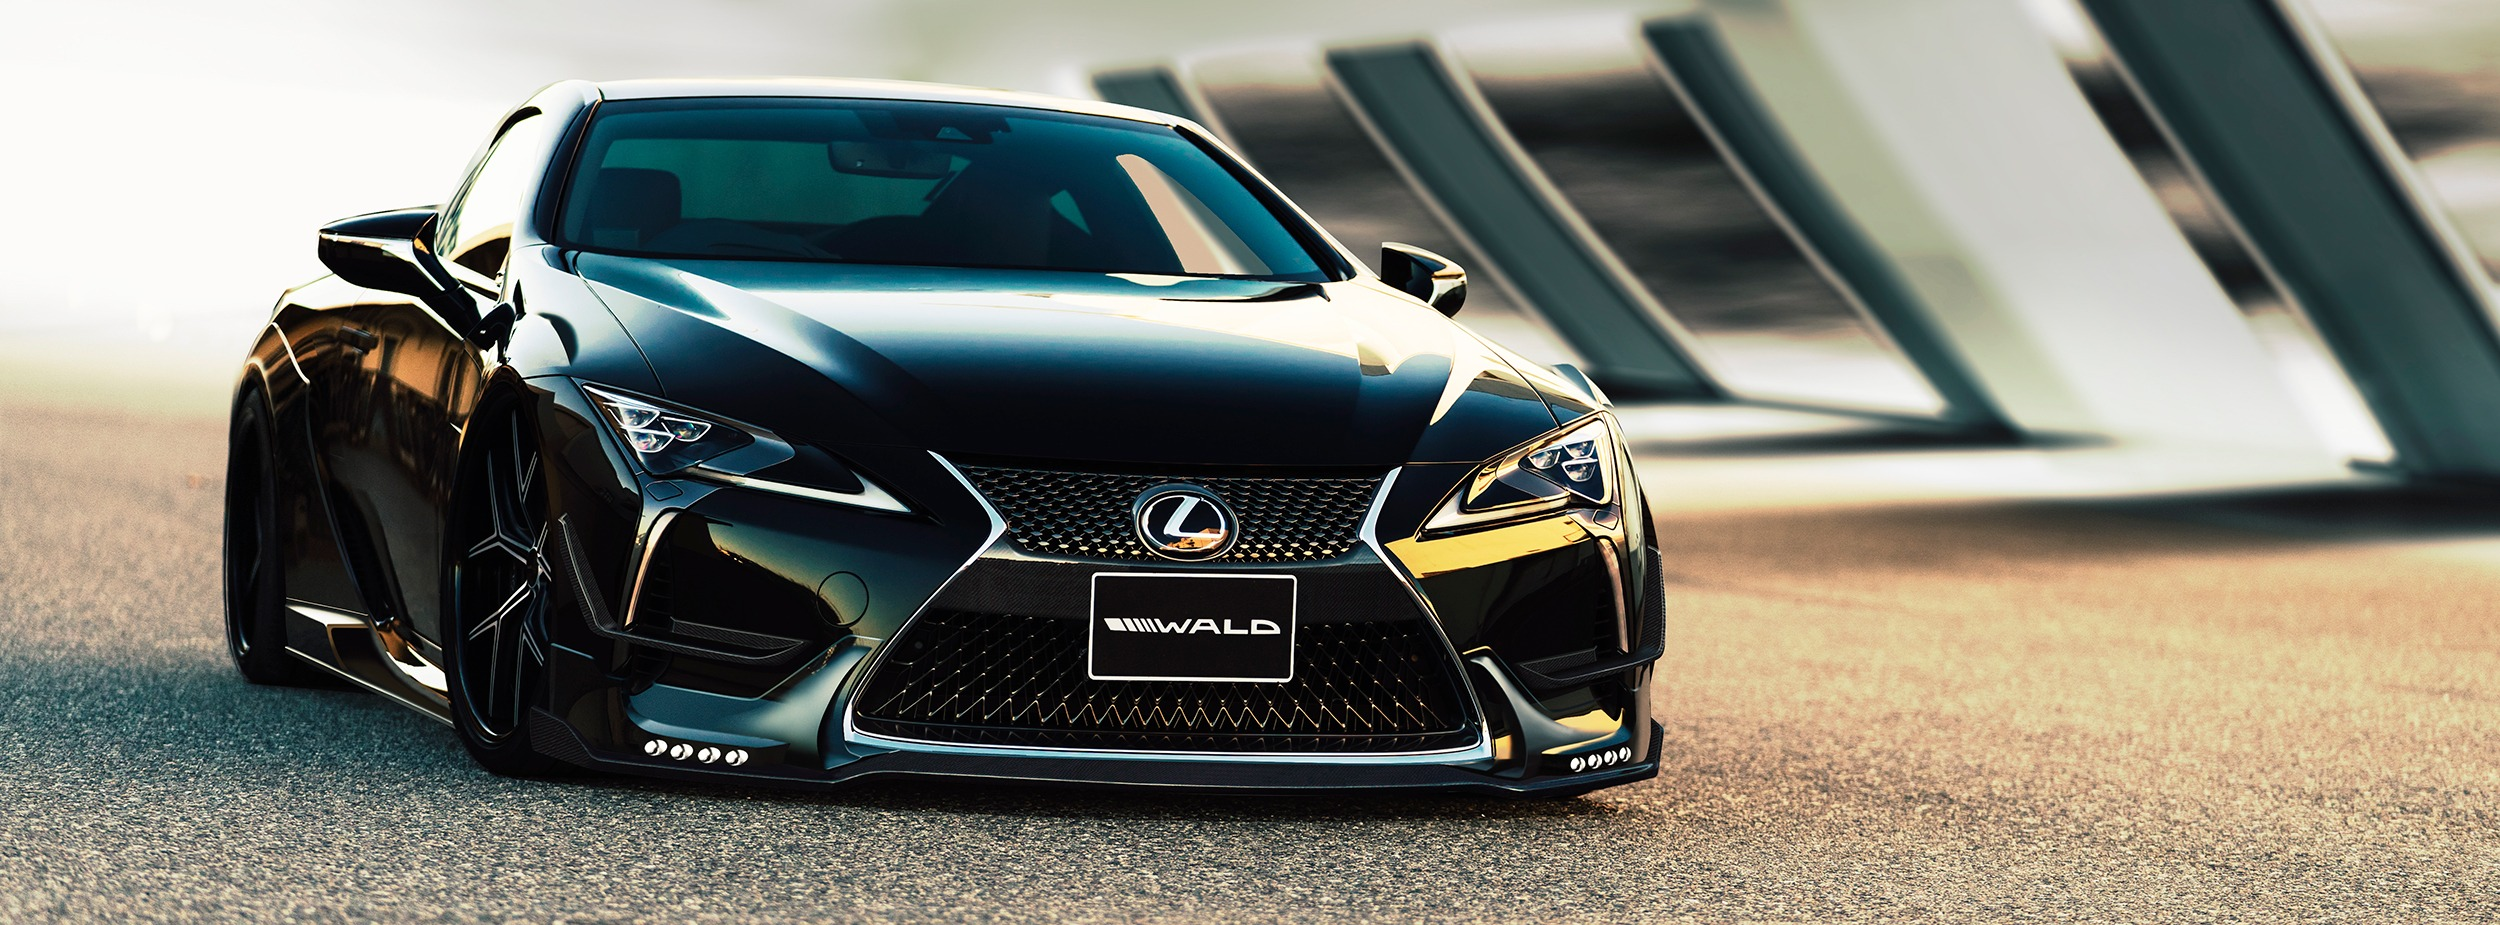 wald-lexus-lc500-lc500h-sports-line-body-kit-black Interesting Info About Lexus Dealers In Delaware